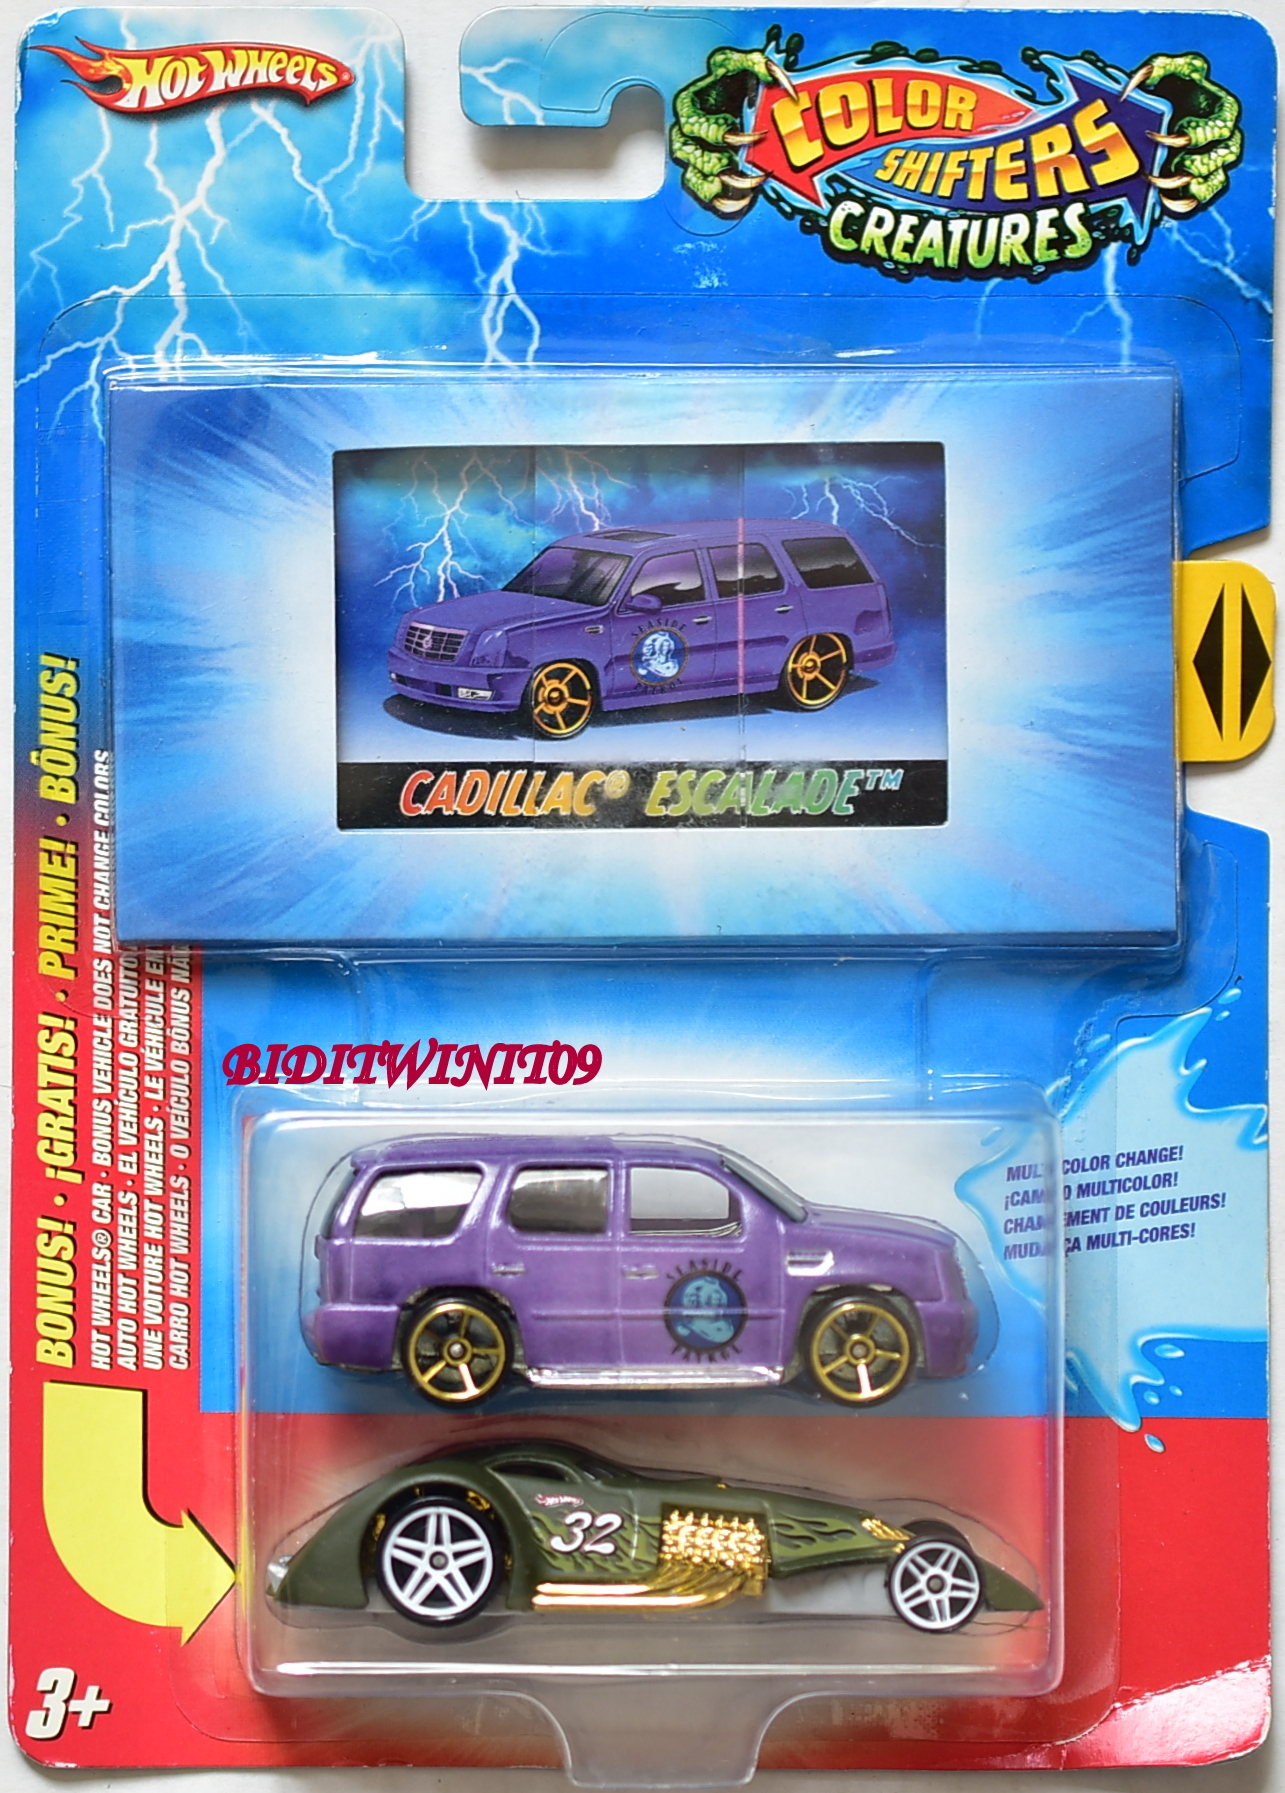 HOT WHEELS COLOR SHIFTERS CREATURES CADILLAC ESCALADE HAMMERED 2 CAR PACK E+